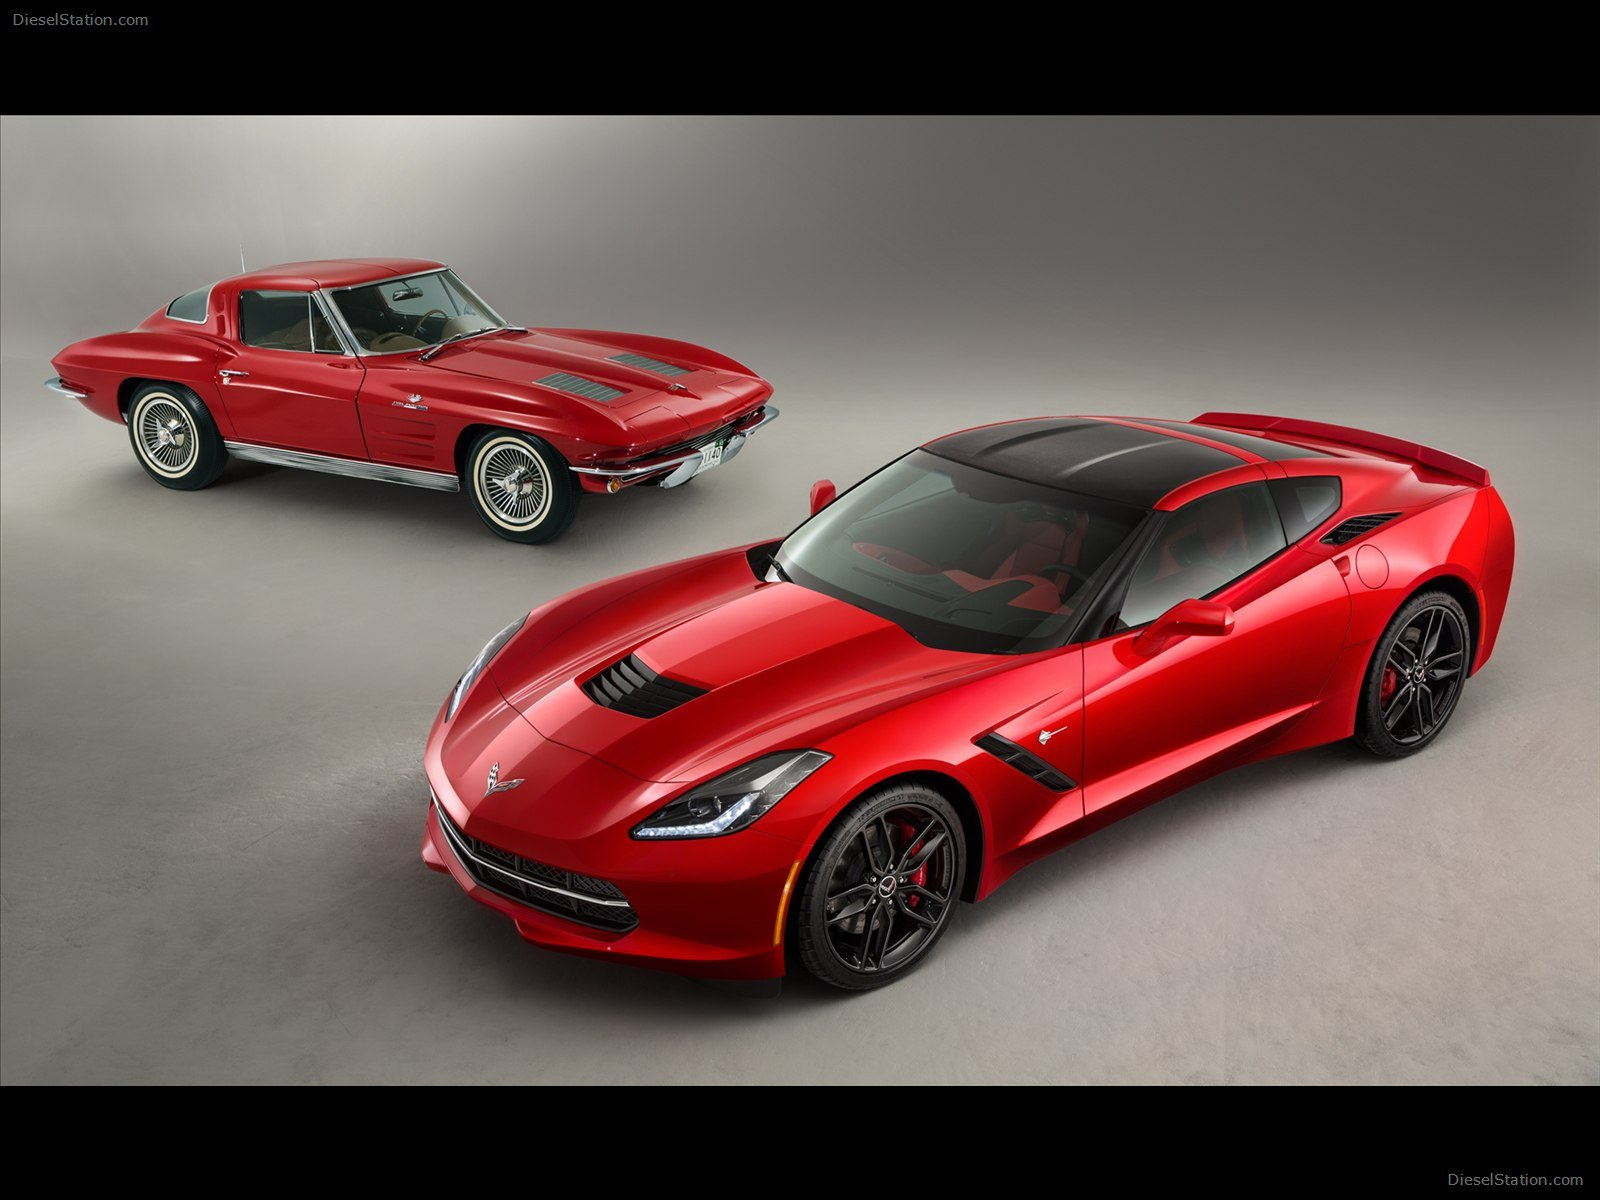 Chevrolet Corvette C7 Stingray 2014 Exotic Car Wallpapers 32 of 166 1600x1200